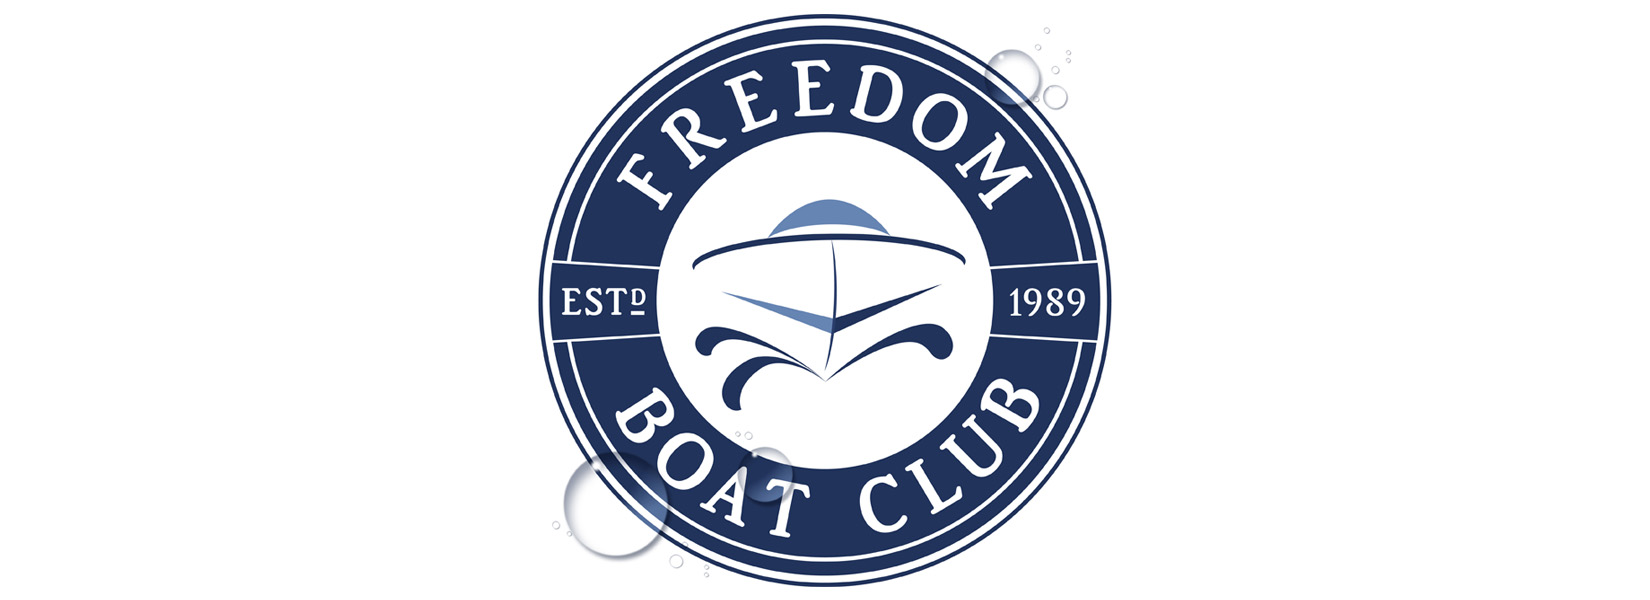 Learn More About Freedom Boat Club!